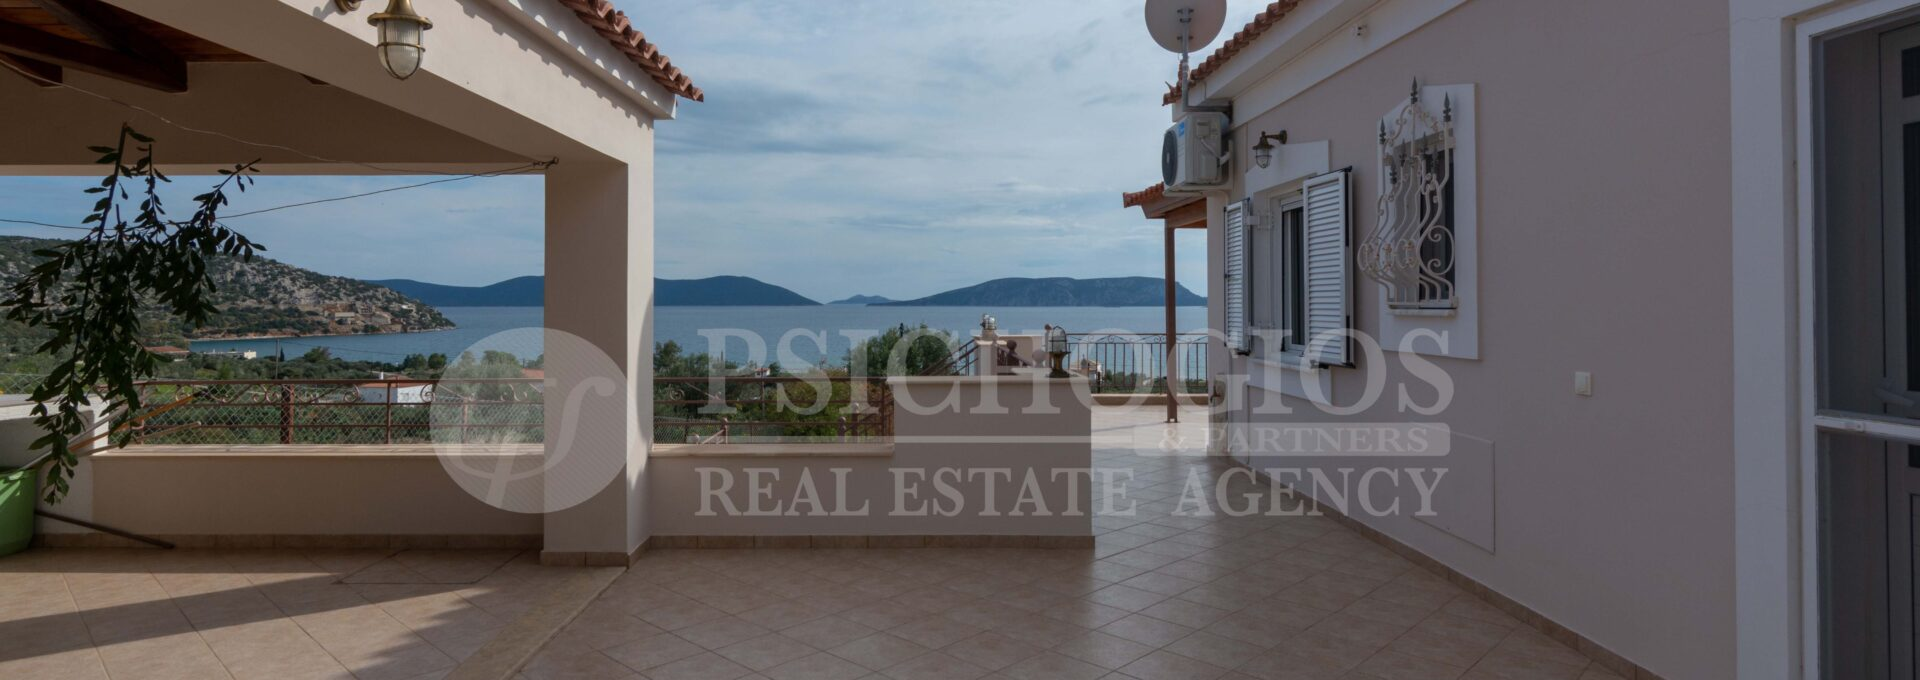 for_sale_house_107_square_meters_3_bedrooms_sea_view_ermioni_greece 1 1 (48)